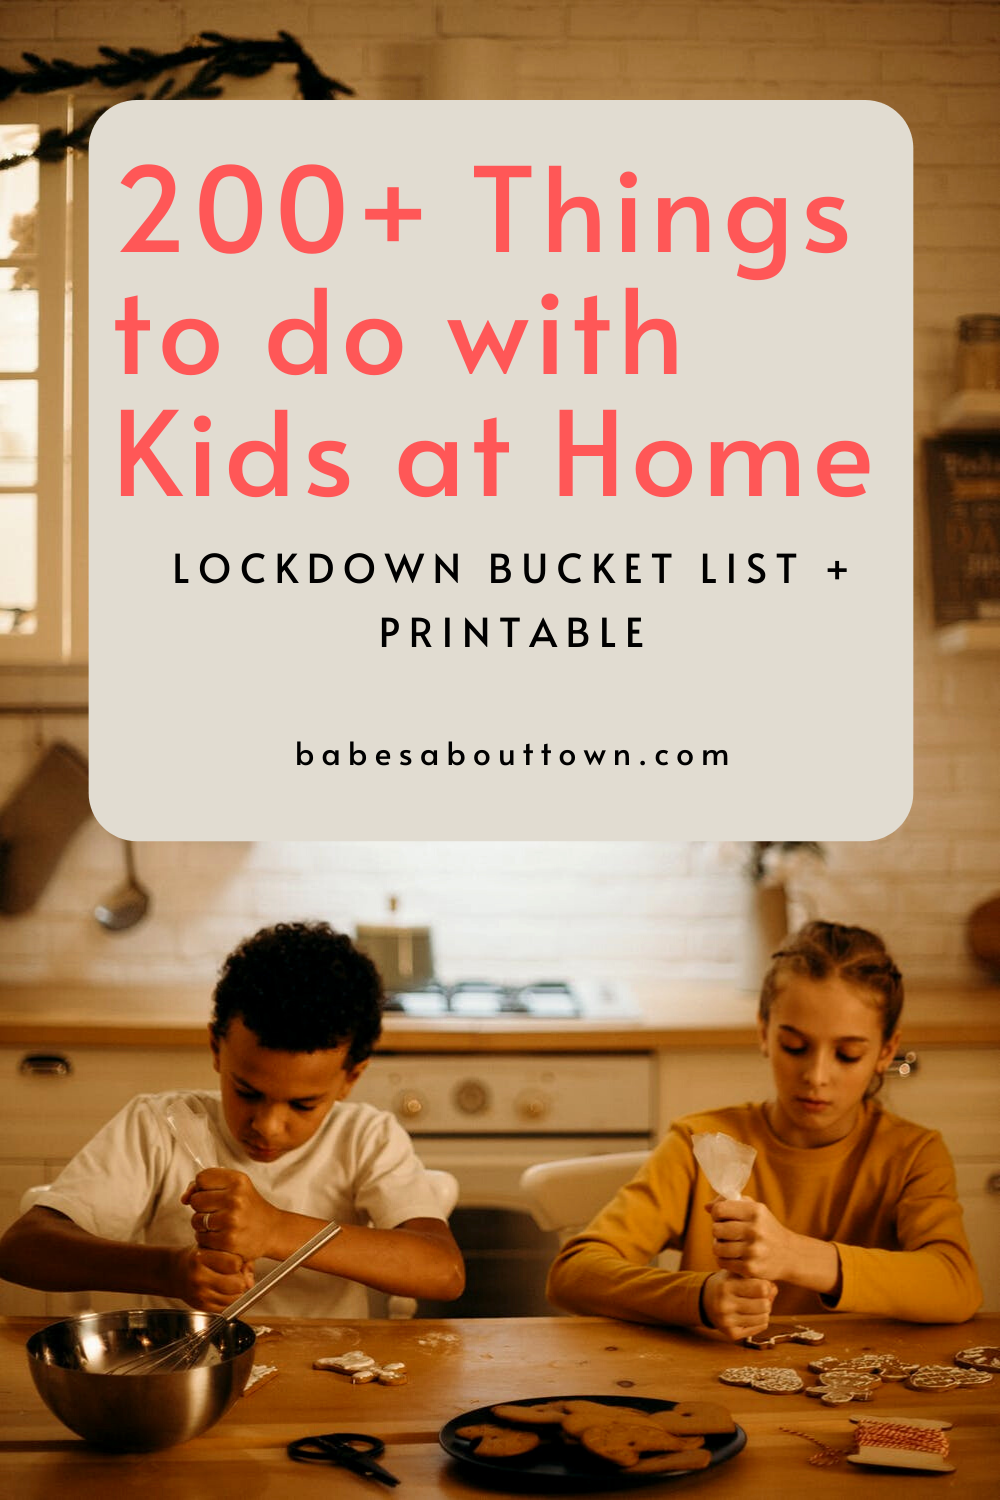 200+ Creative Things to do with Kids at Home (Lockdown Bucket List + free printable)